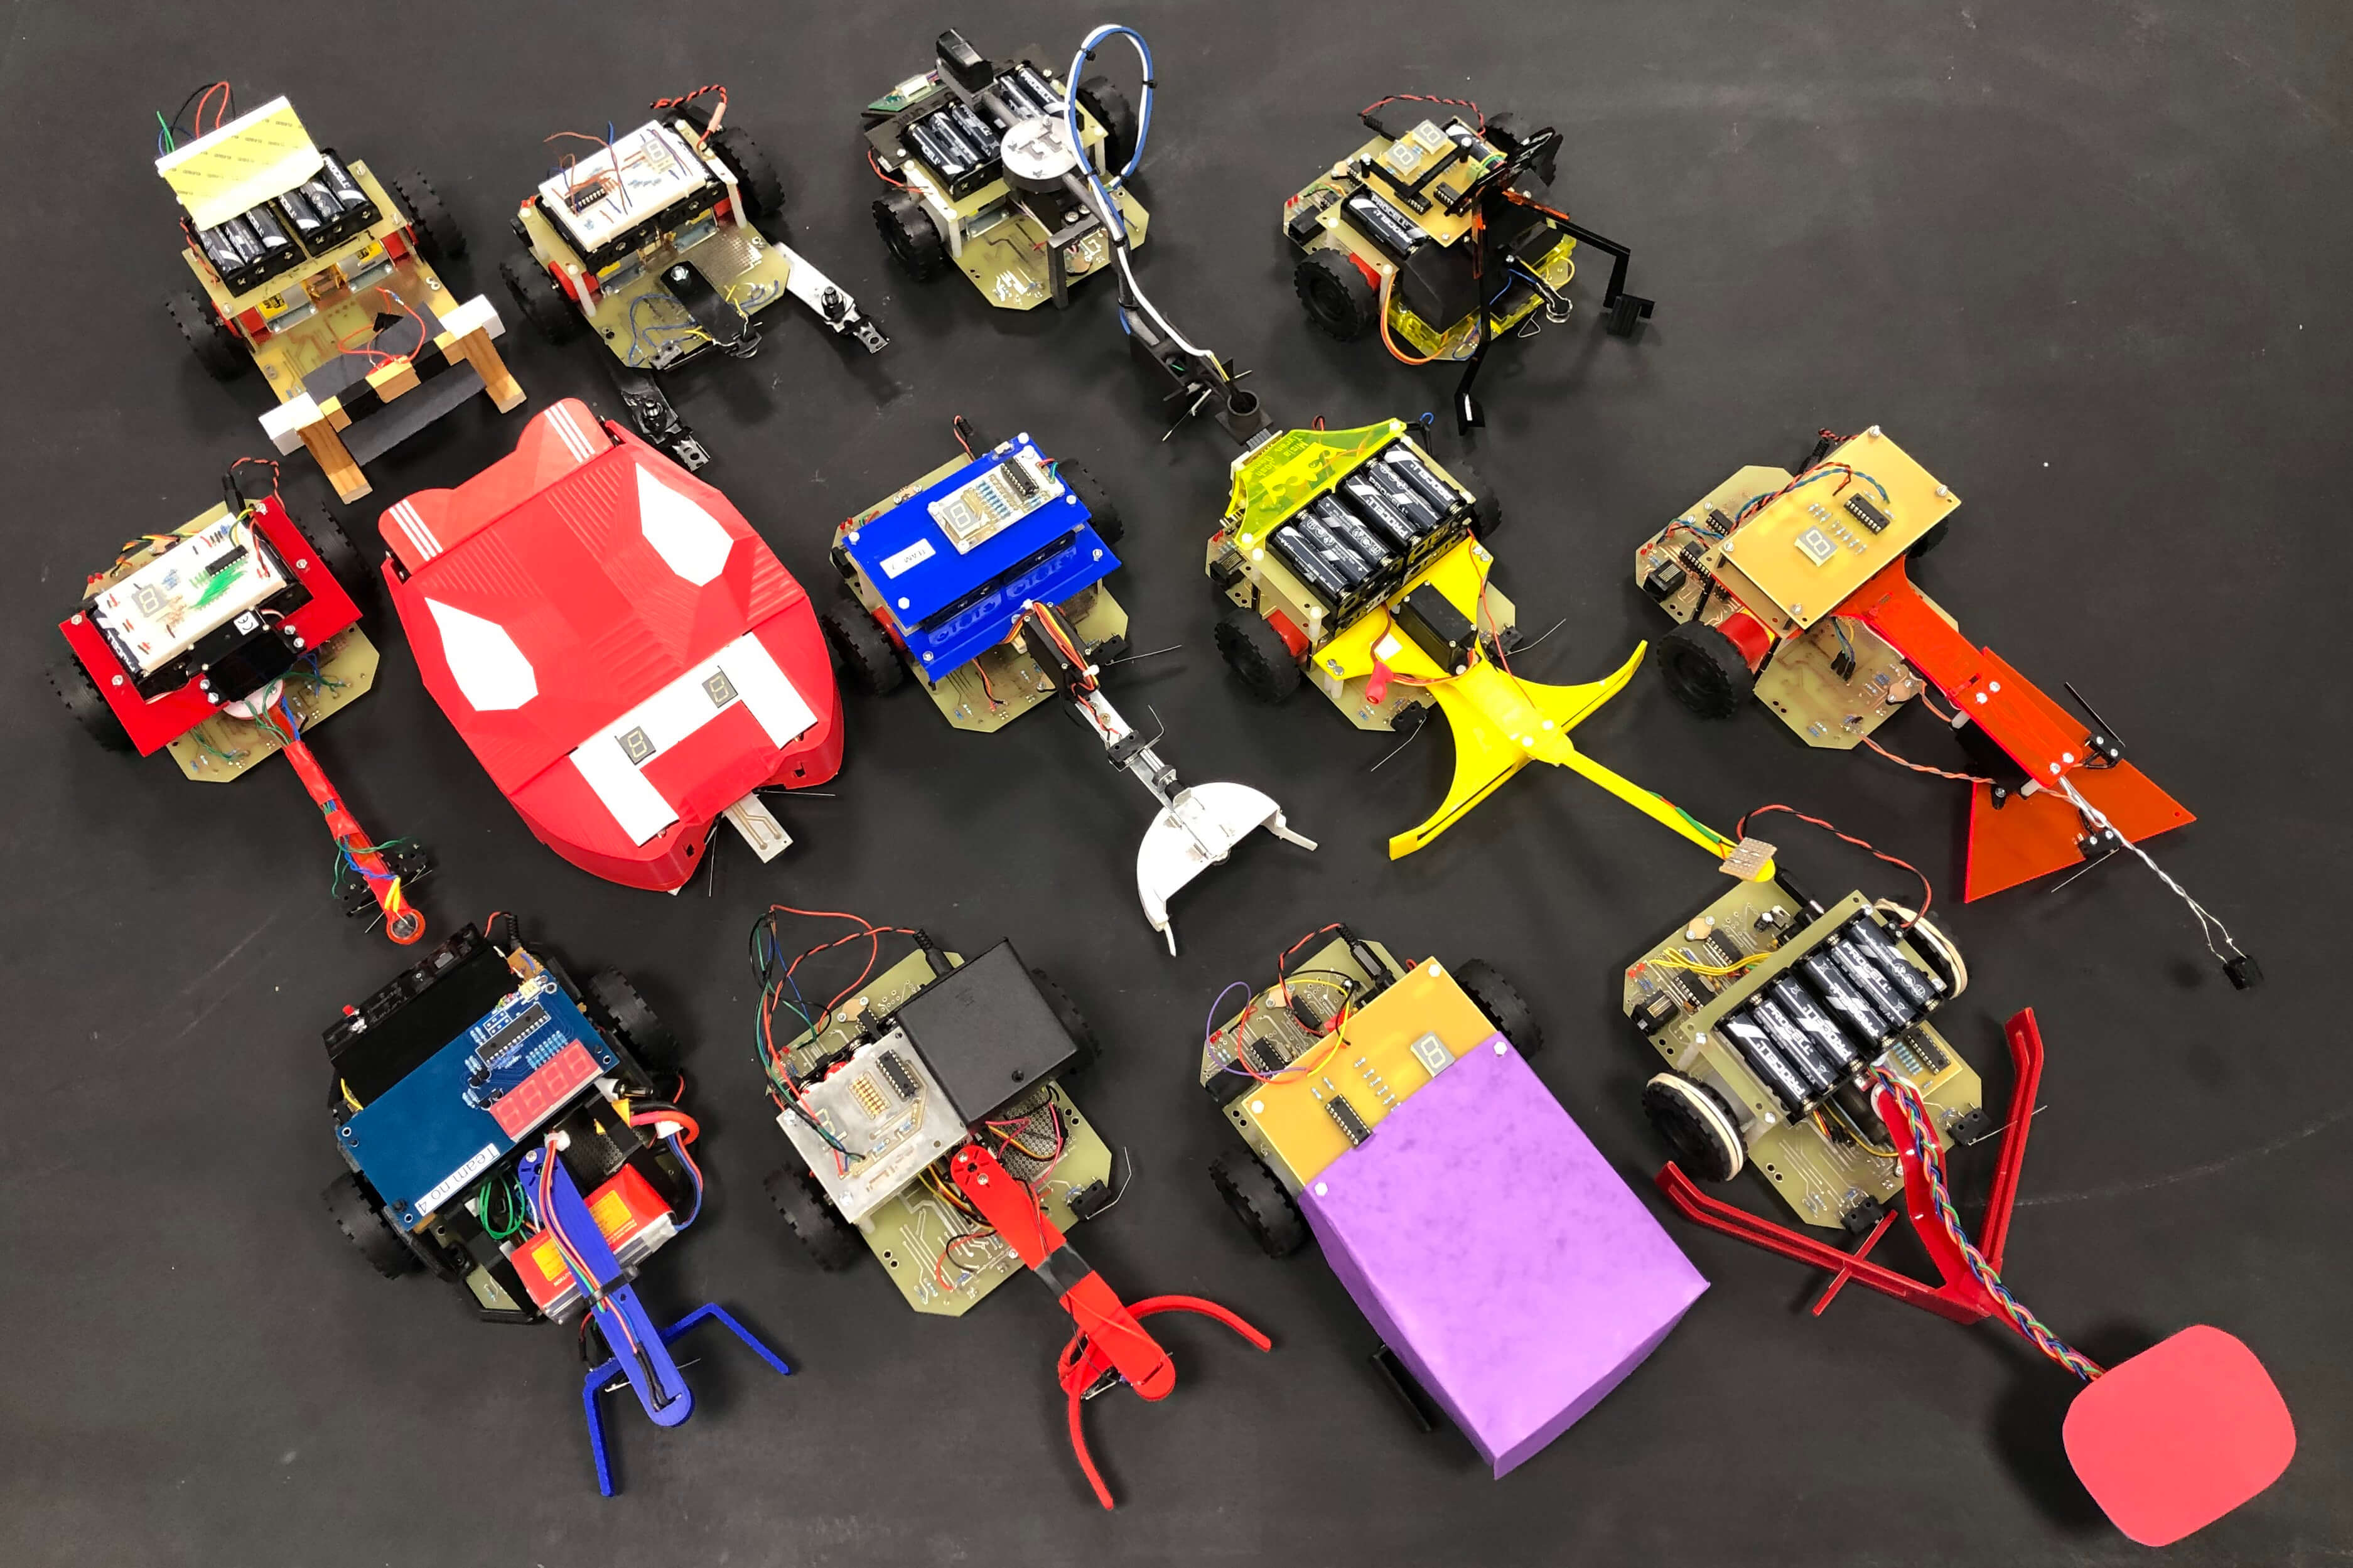 Derbots (Derby Robots) that took part in the 2020 Derbot competition